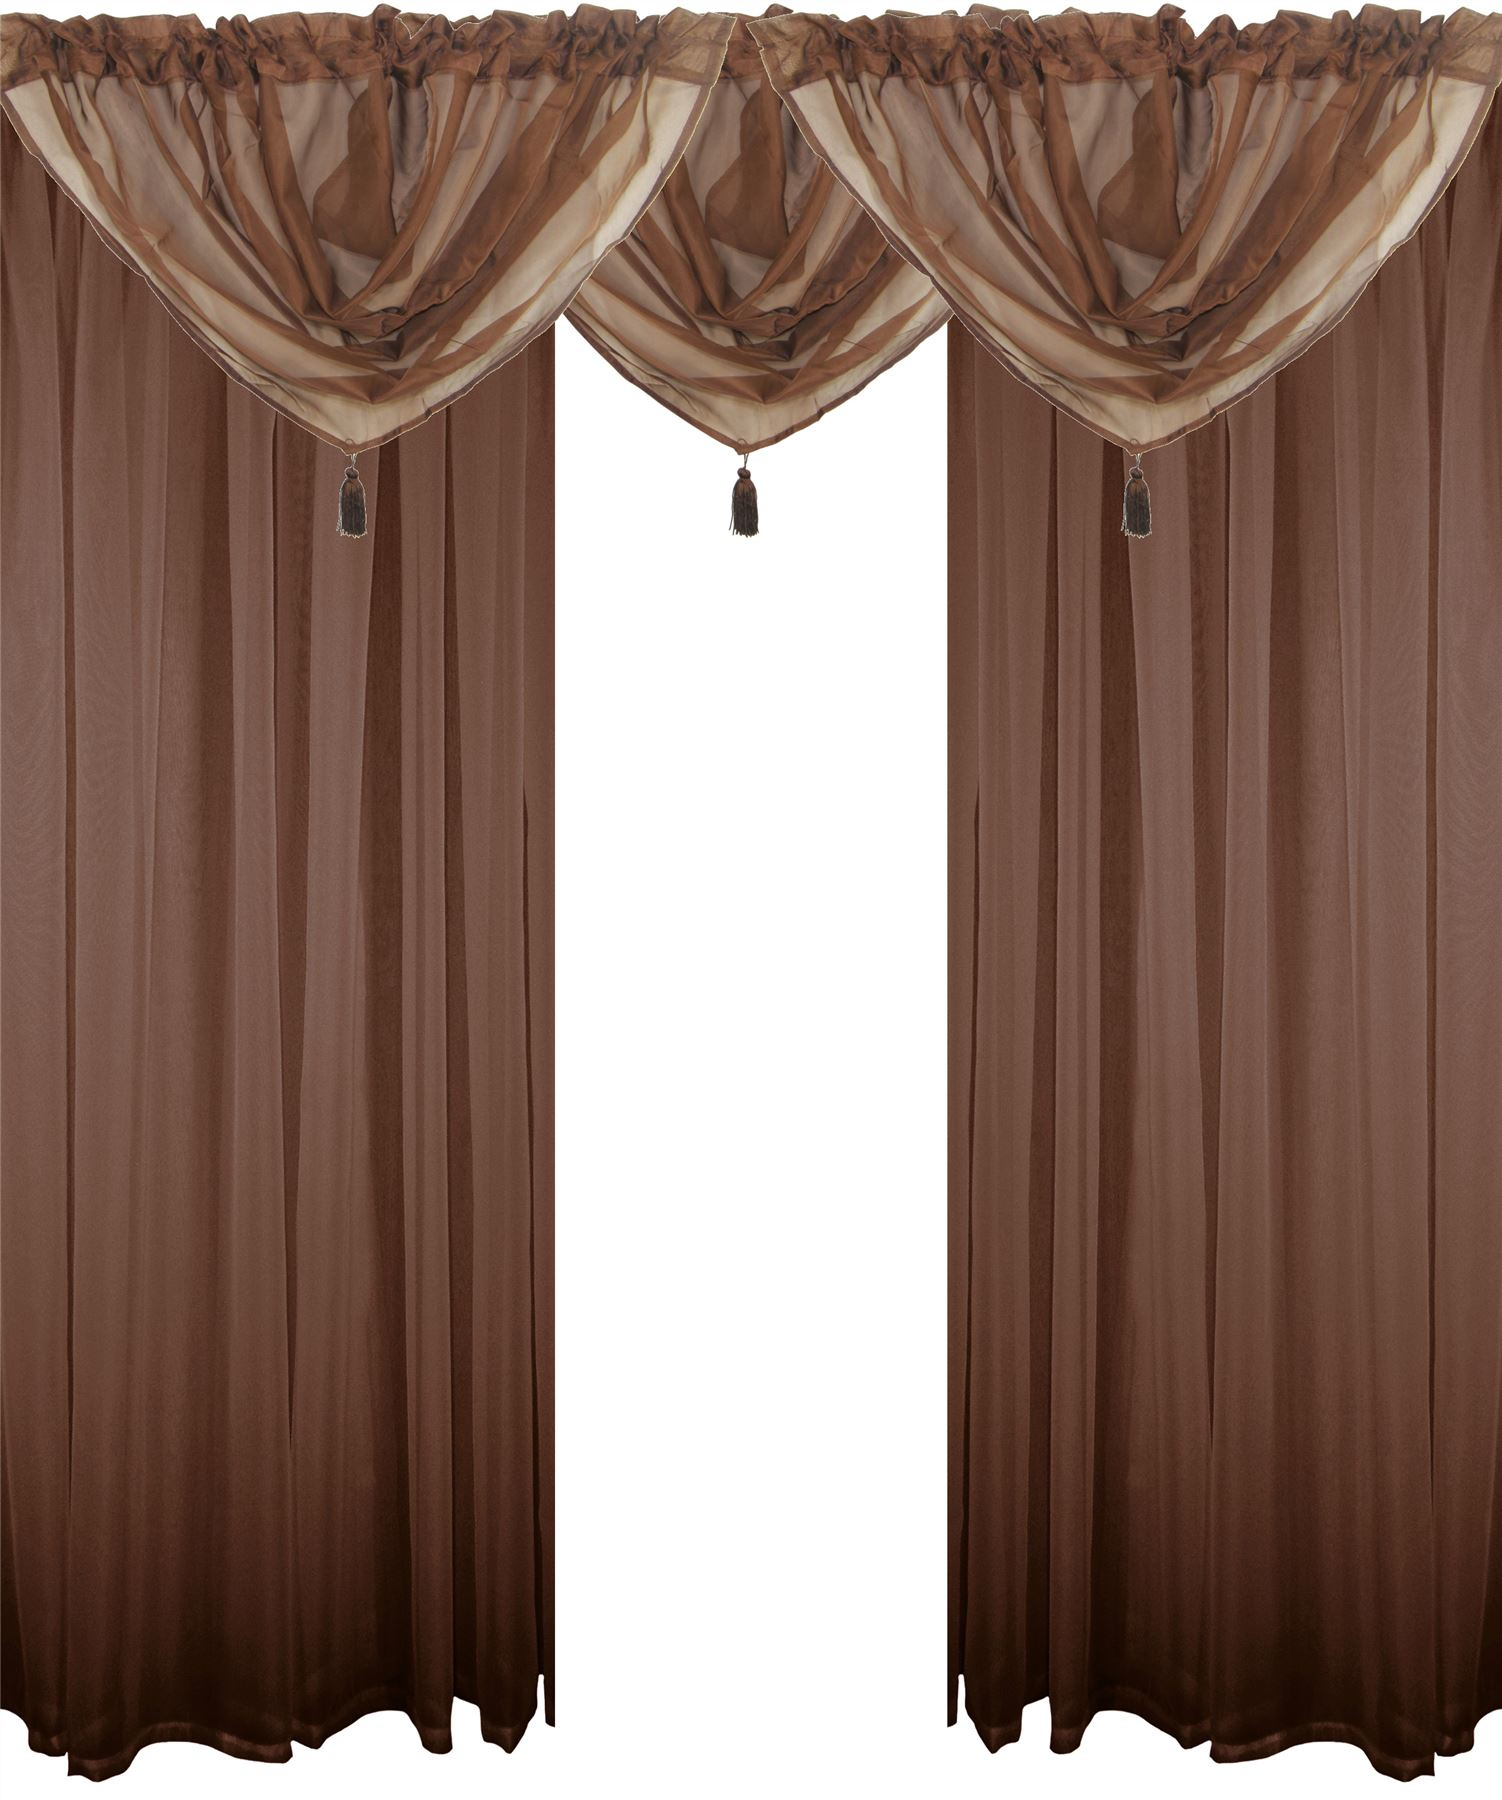 Details About Chocolate Brown 5 Piece Voile Set Rod Pocket Curtains Drapes & Swags – 4 Sizes With Regard To Chocolate 5 Piece Curtain Tier And Swag Sets (View 12 of 20)